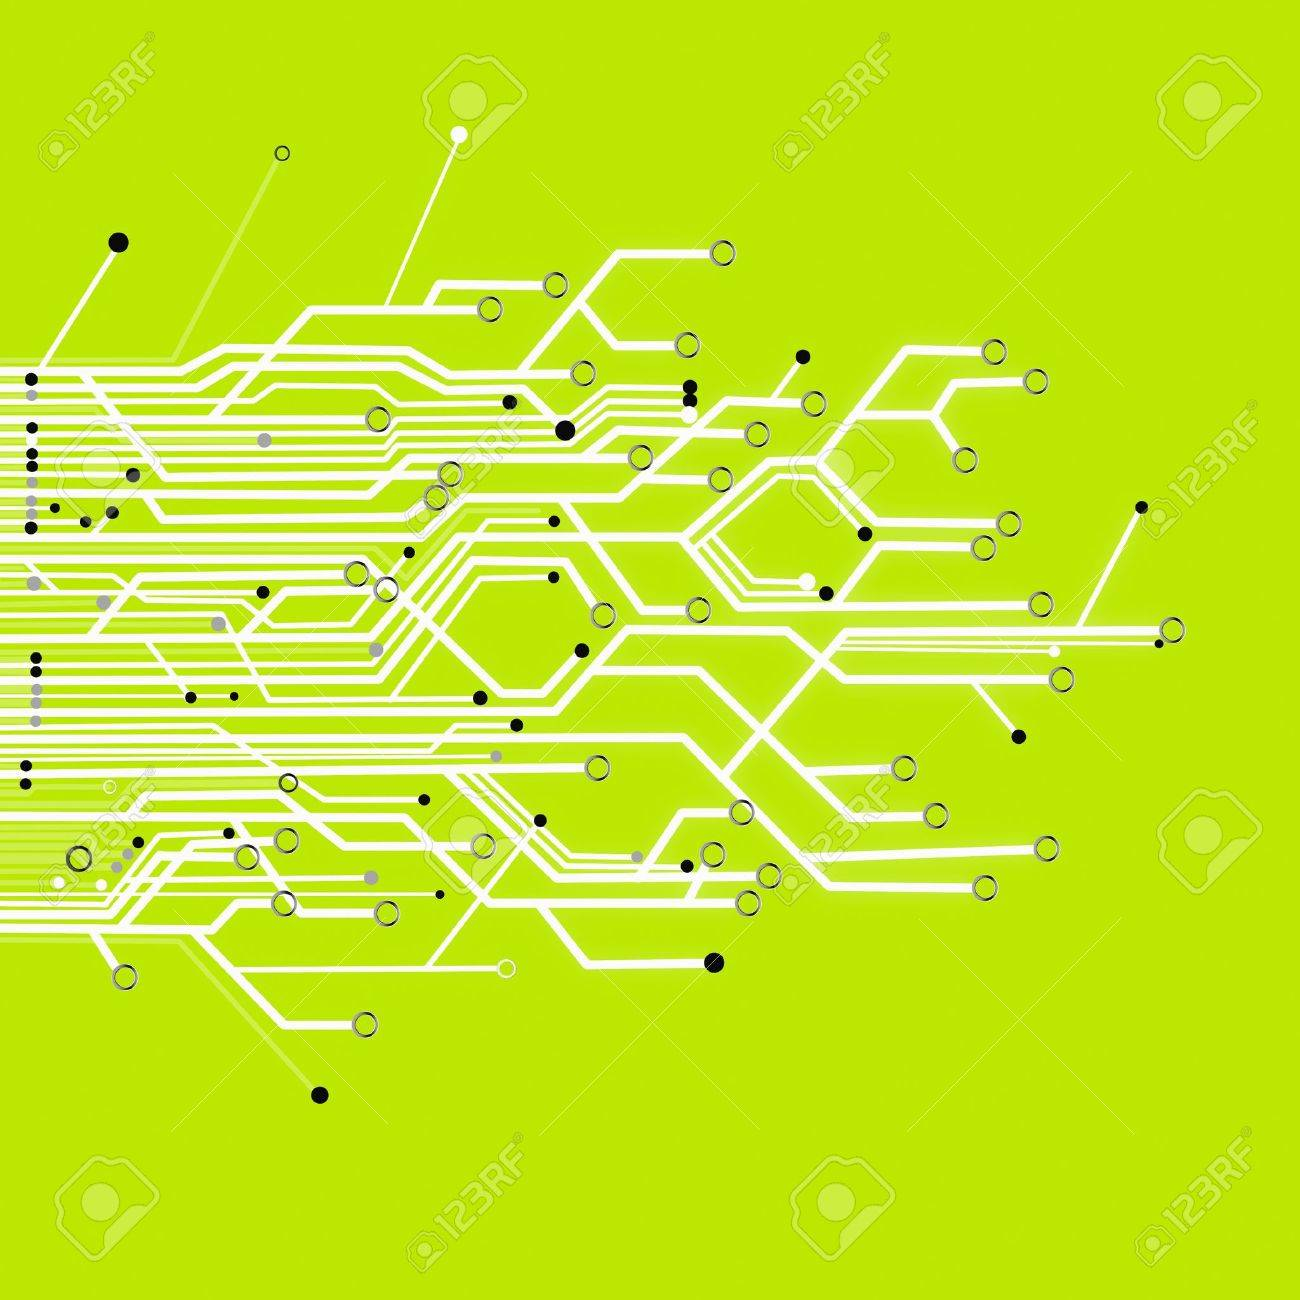 Circuit Board Graphic On Color Background Stock Photo, Picture And ...